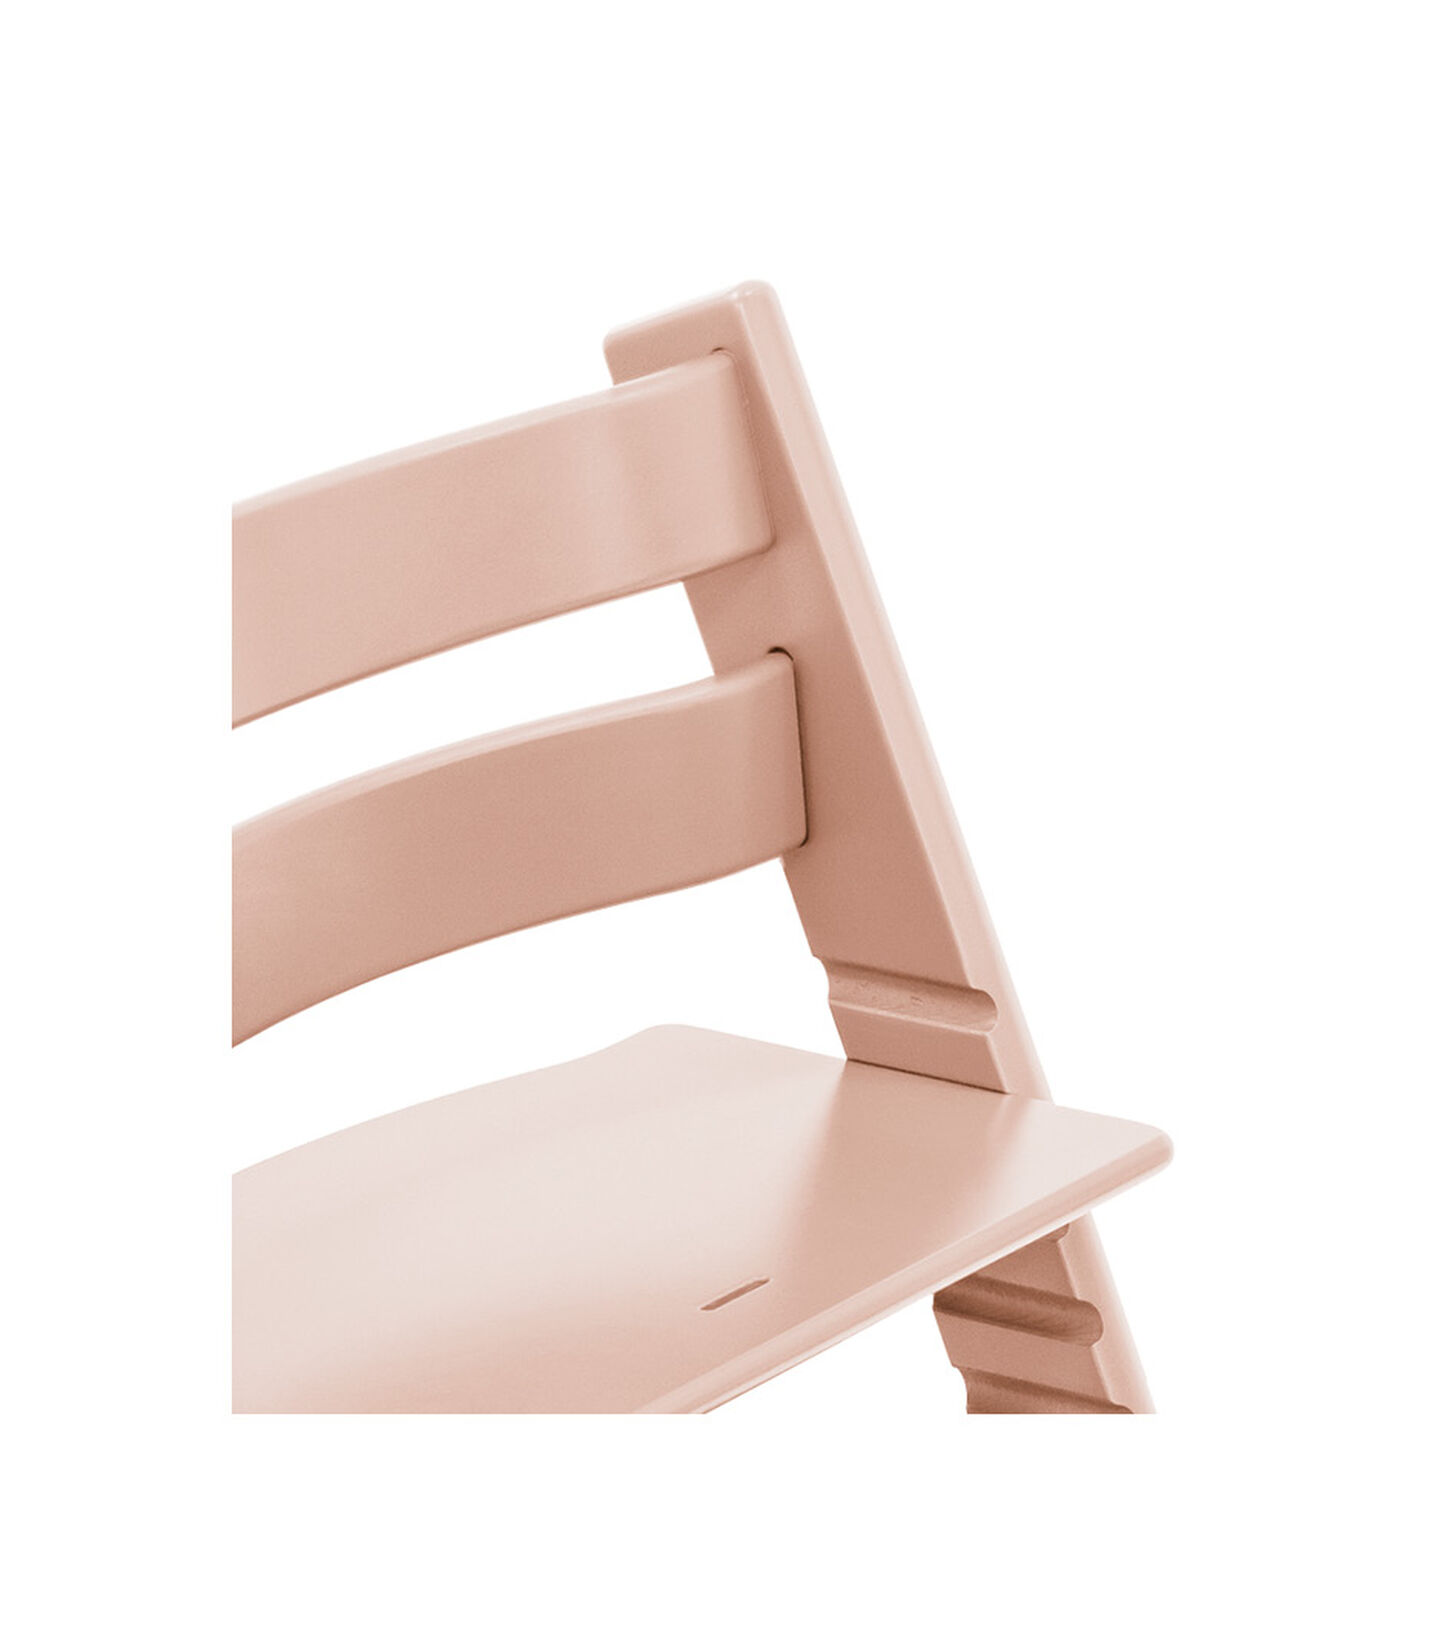 Tripp Trapp® Chair Serene Pink, Serene Pink, mainview view 3